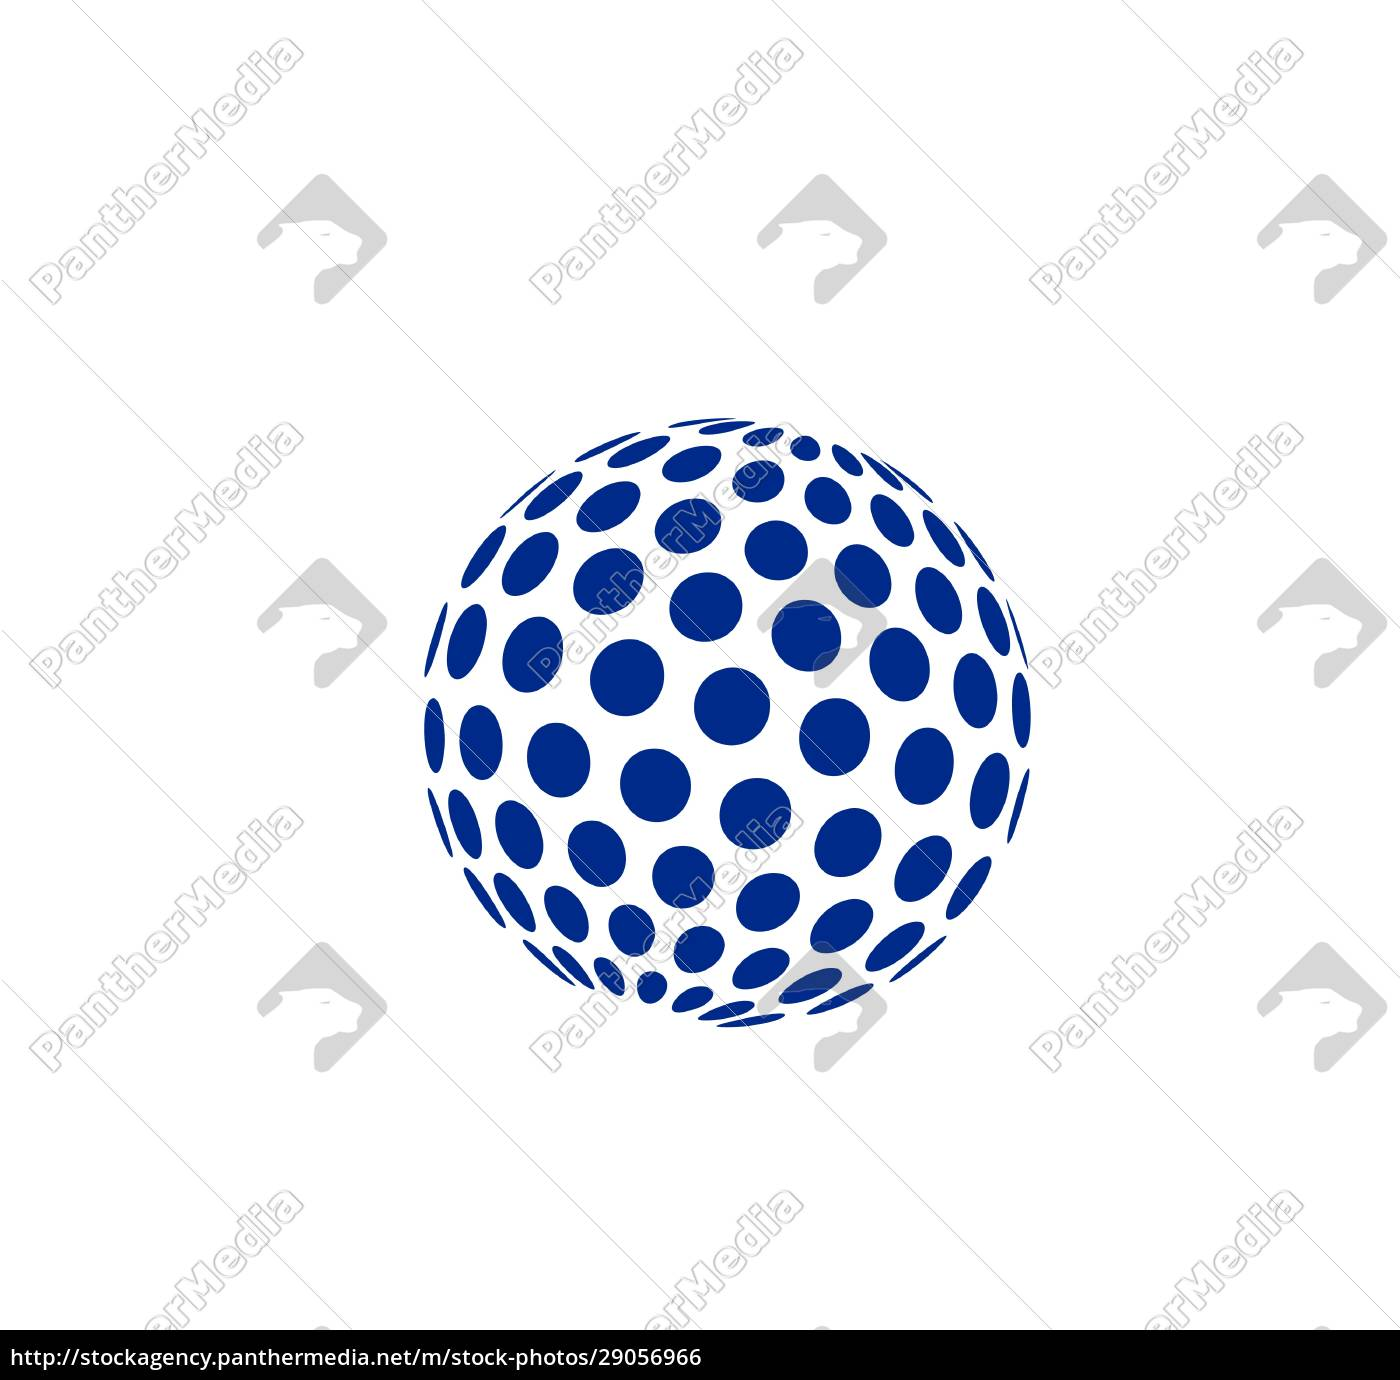 globe, global, network, connected, icon, vector - 29056966